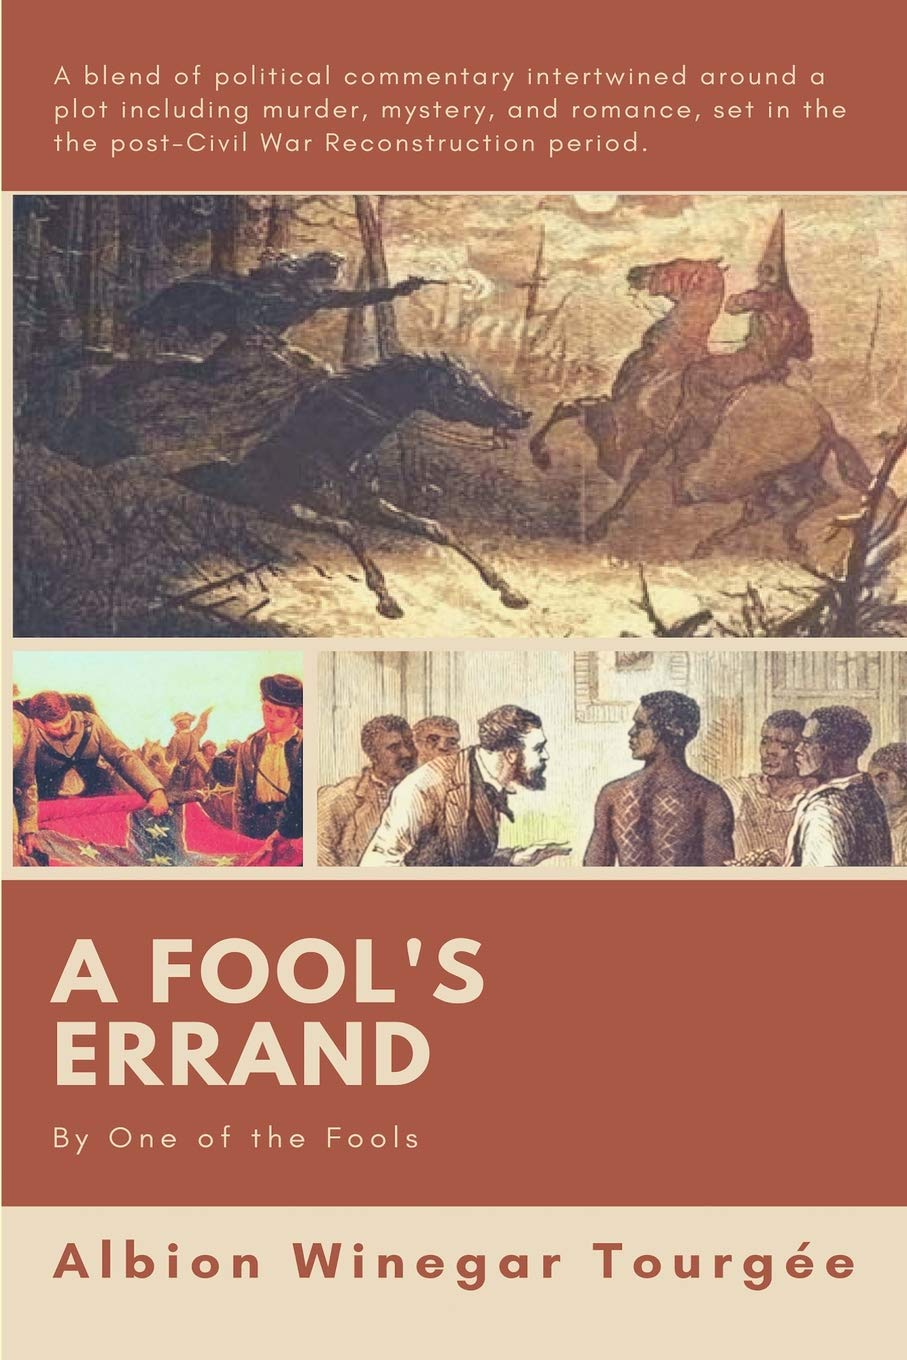 A Fools Errand Reforming Discipline >> A Fool S Errand By One Of The Fools Albion Winegar Tourgee